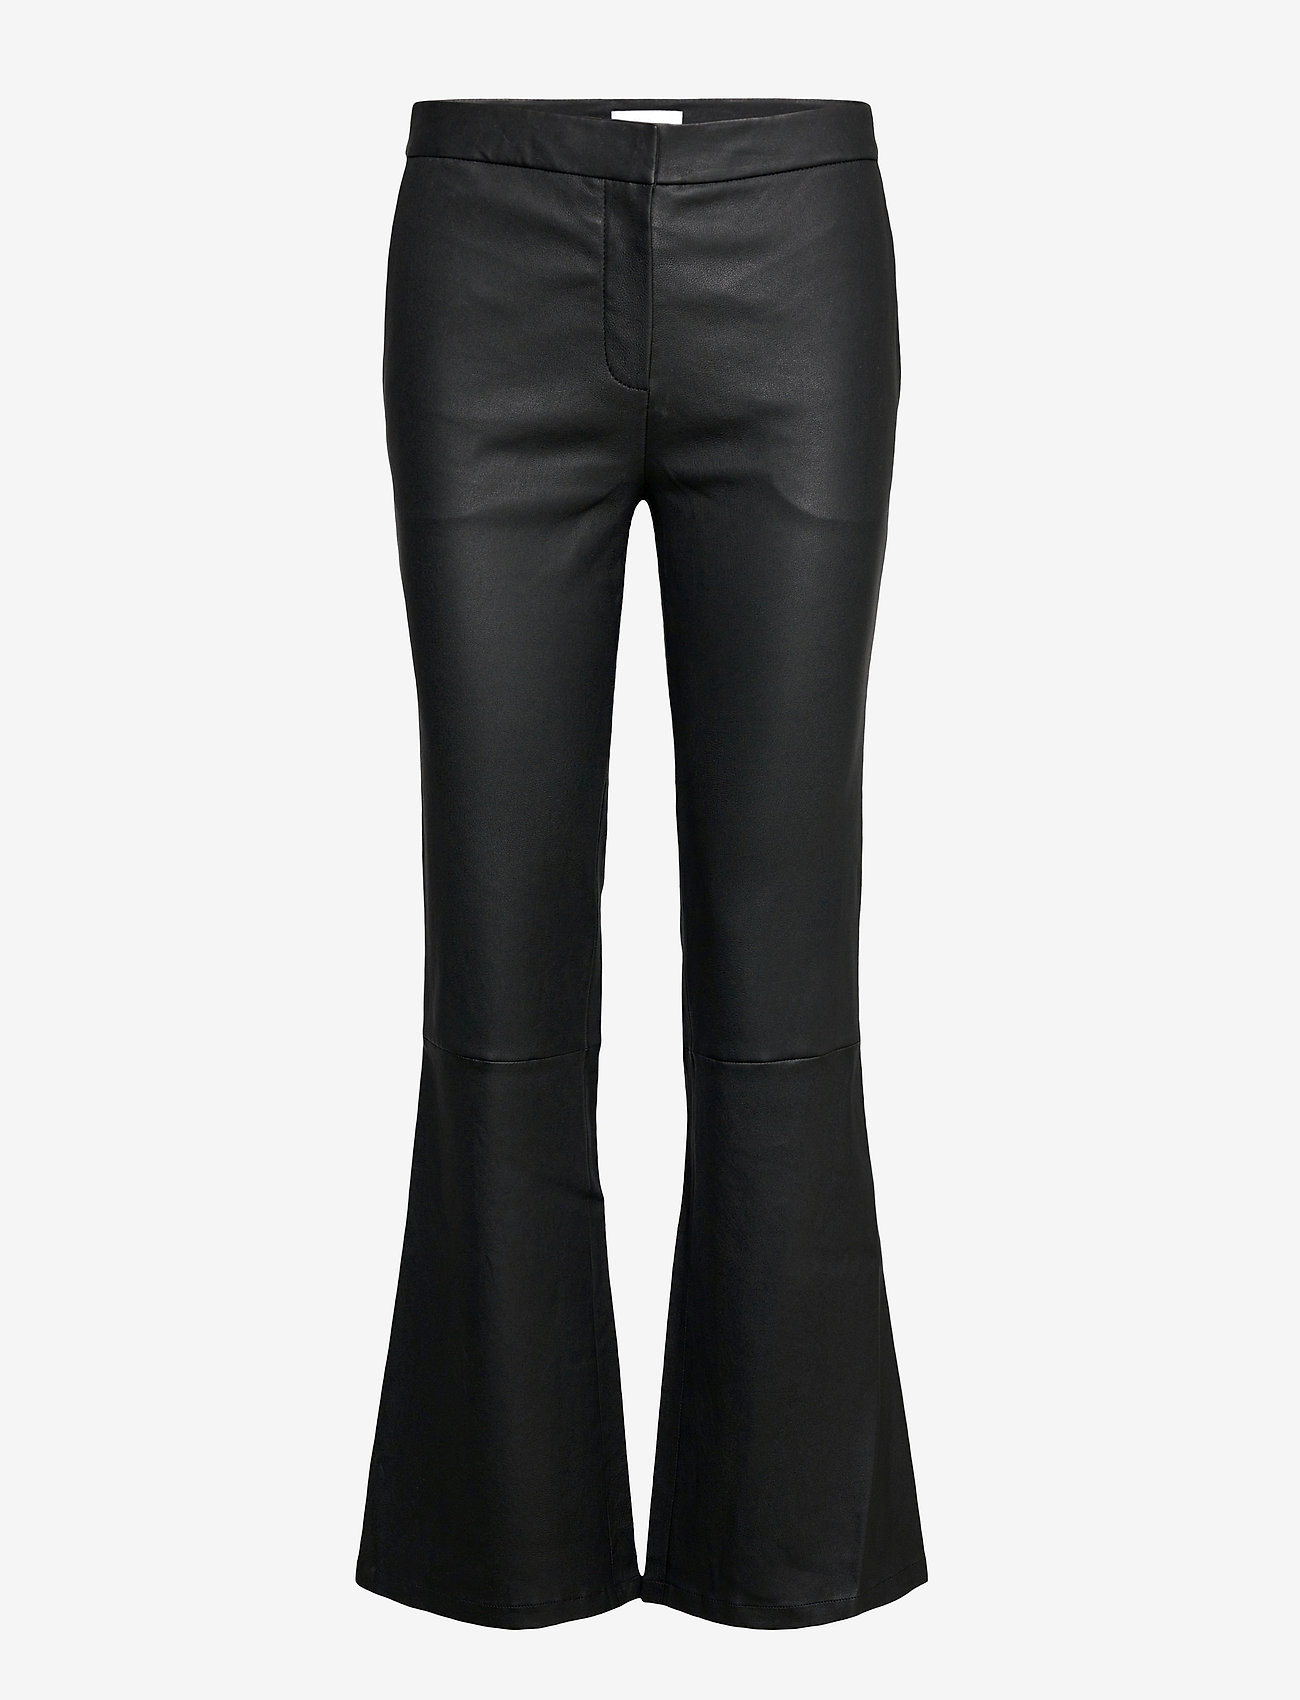 2NDDAY - 2ND Mauser - leather trousers - black - 1